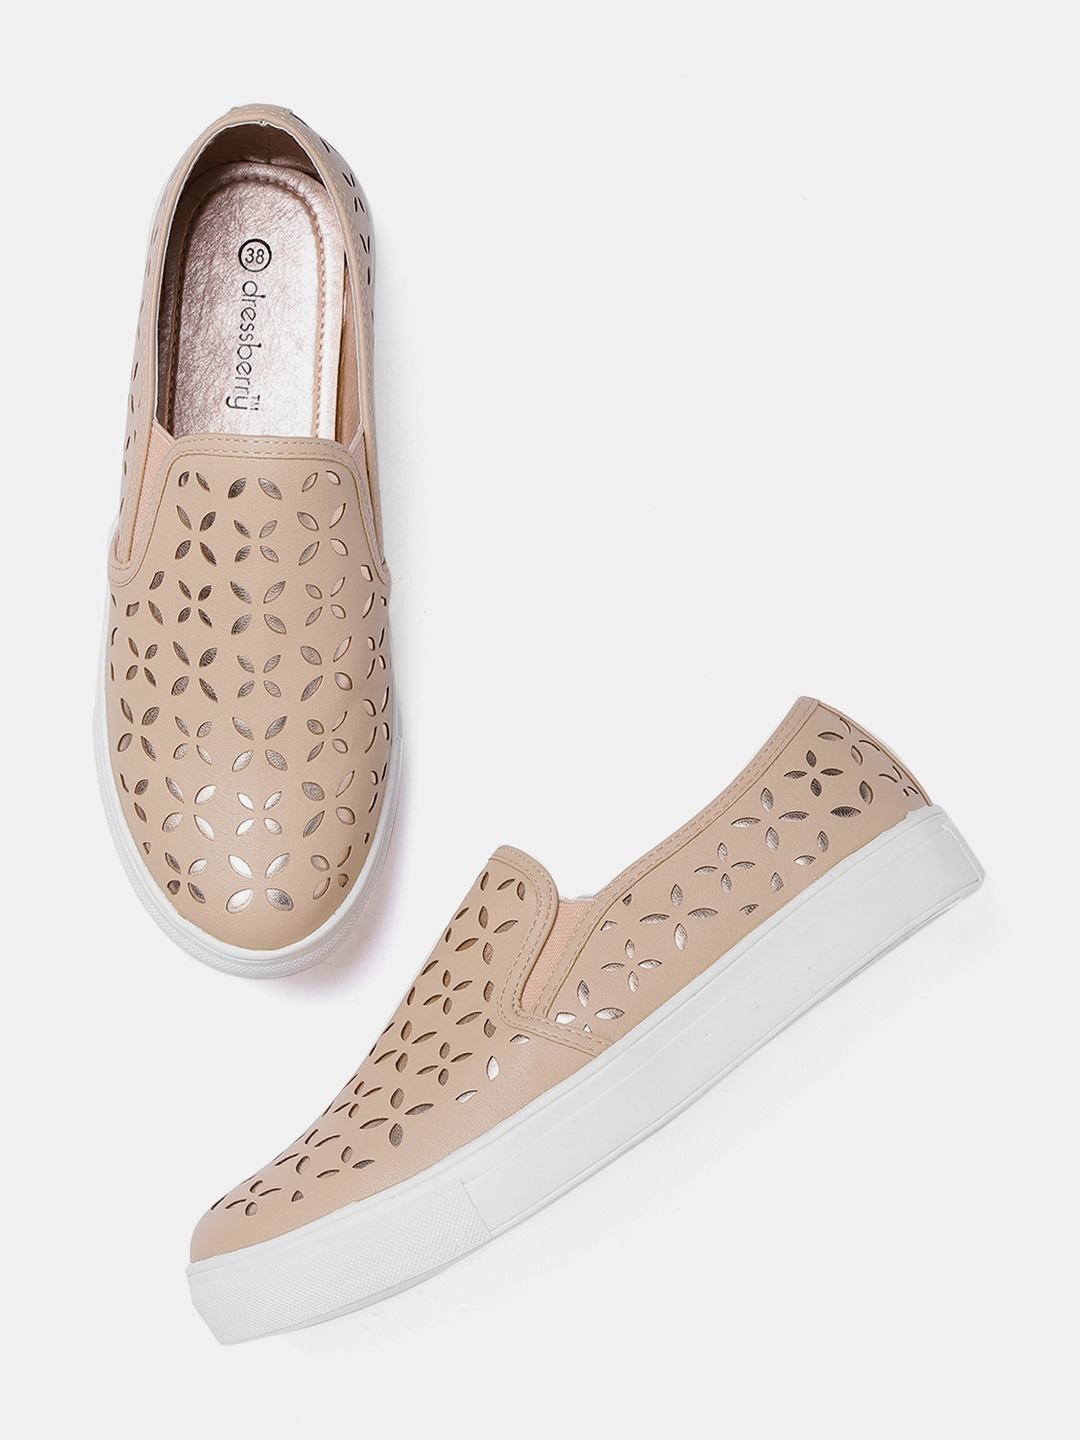 Peach-Coloured & Rose Gold-Toned Cut-Work Slip-On Sneakers